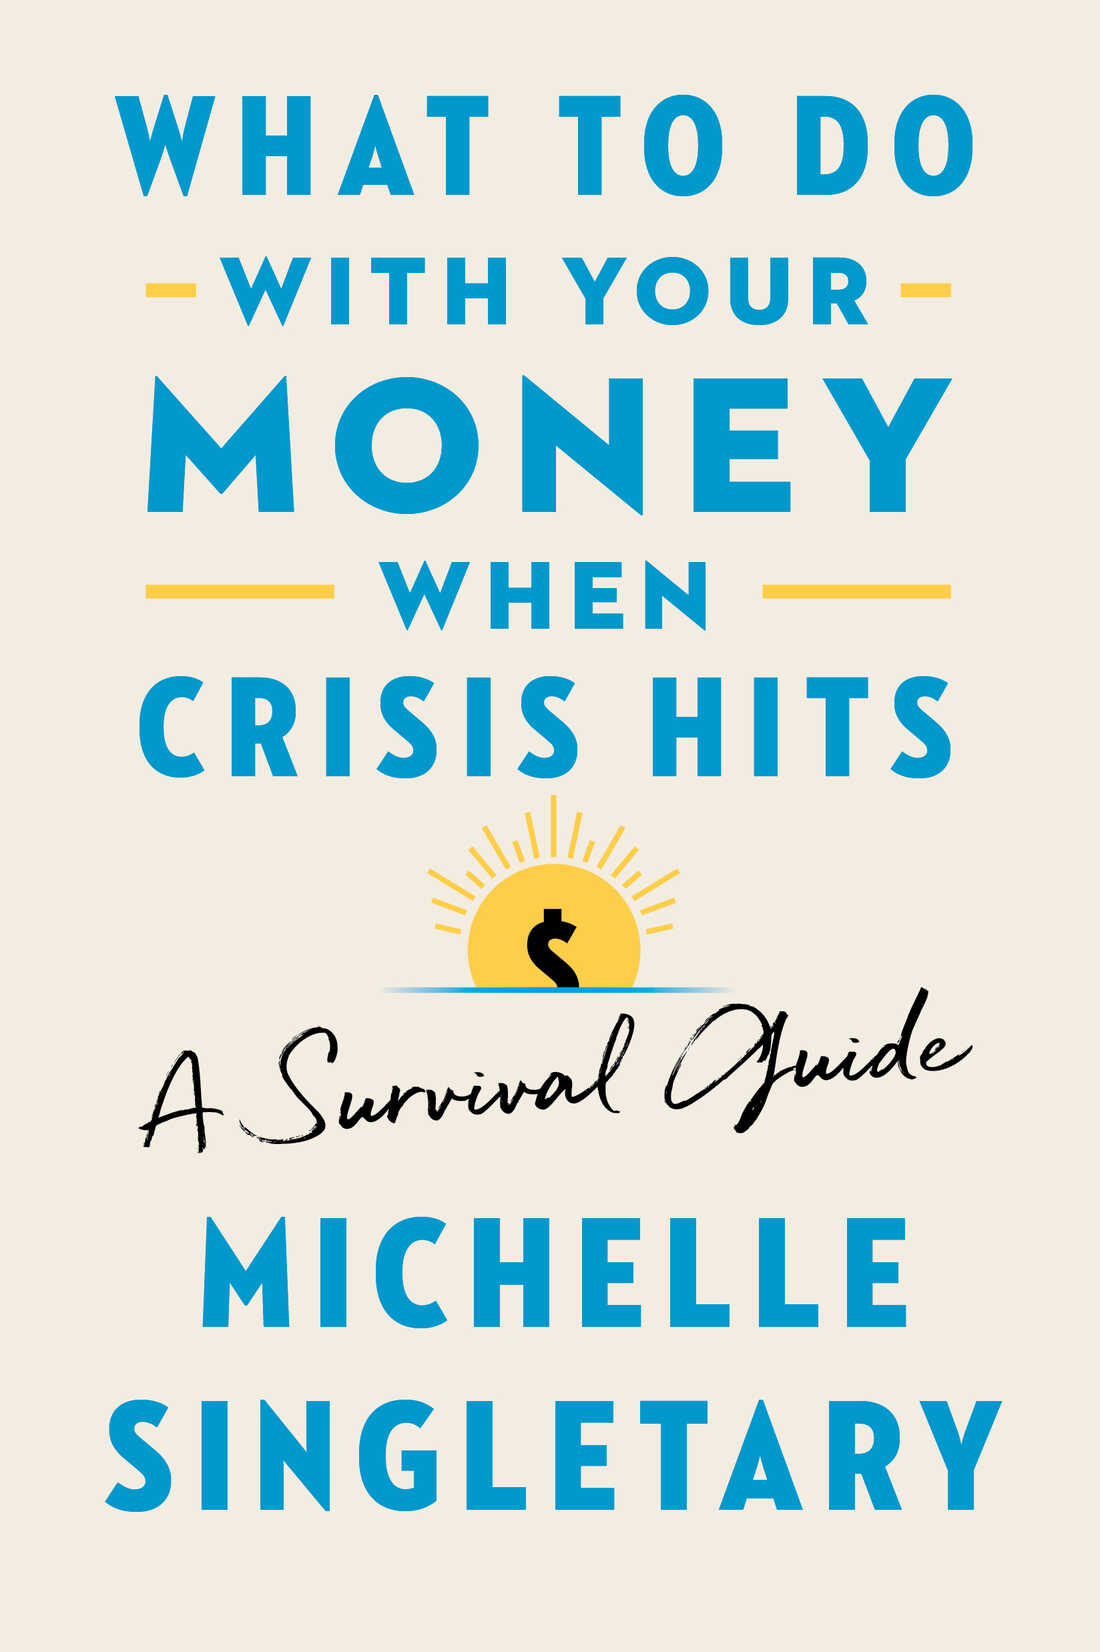 The cover of Michelle Singletary's book What To Do With Your Money When Crisis Hits: A Survival Guide